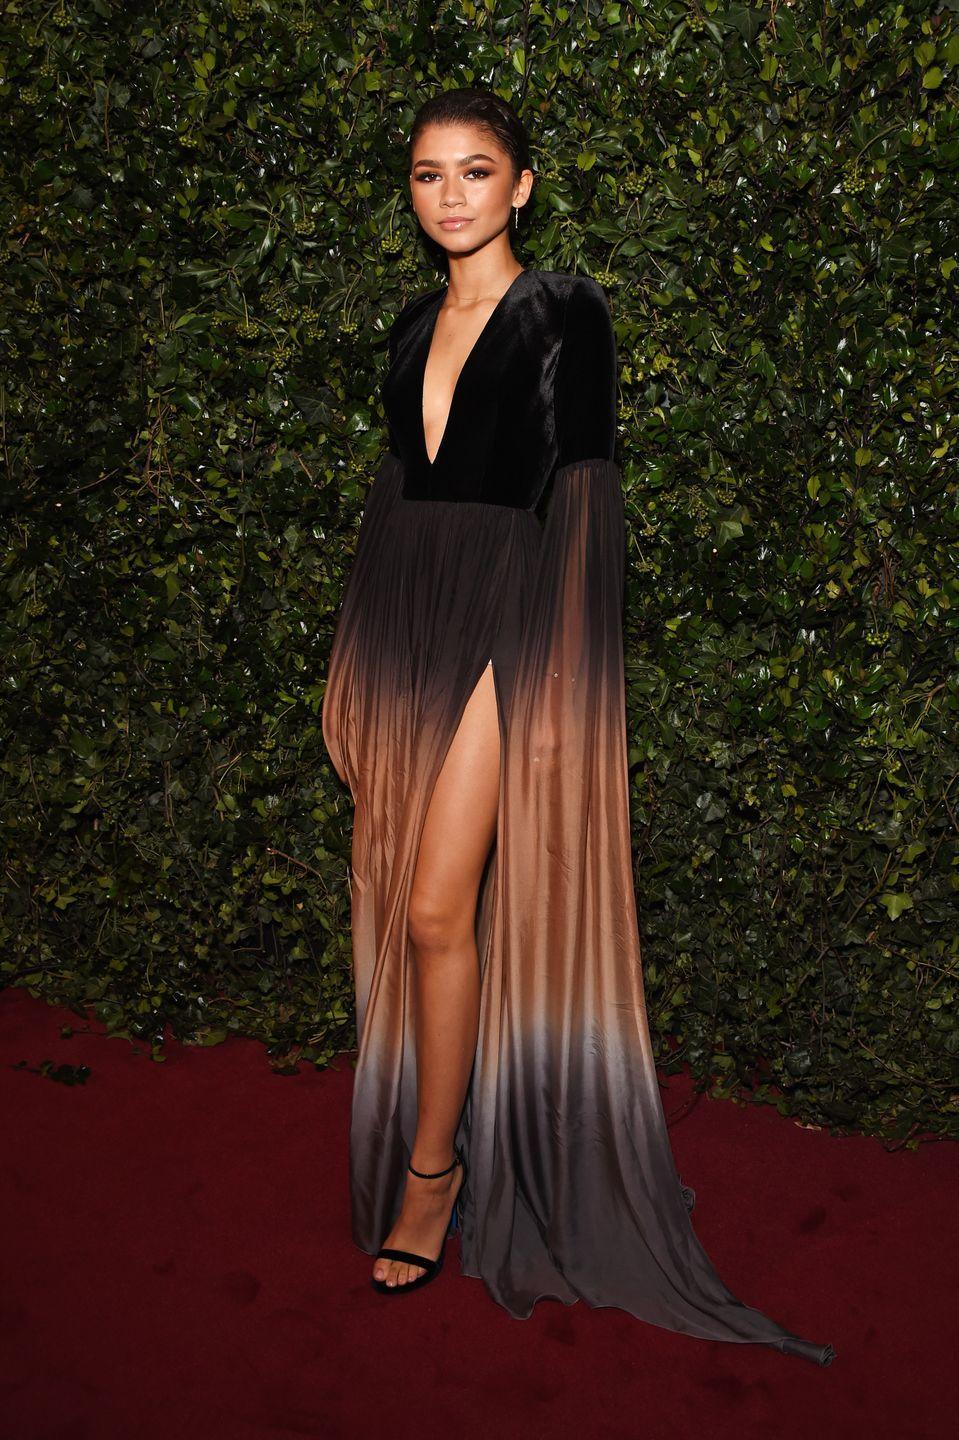 """<p>Zendaya wore Elie Saab<span class=""""redactor-invisible-space""""> to the London Evening Standard Awards, December 2017.</span></p>"""